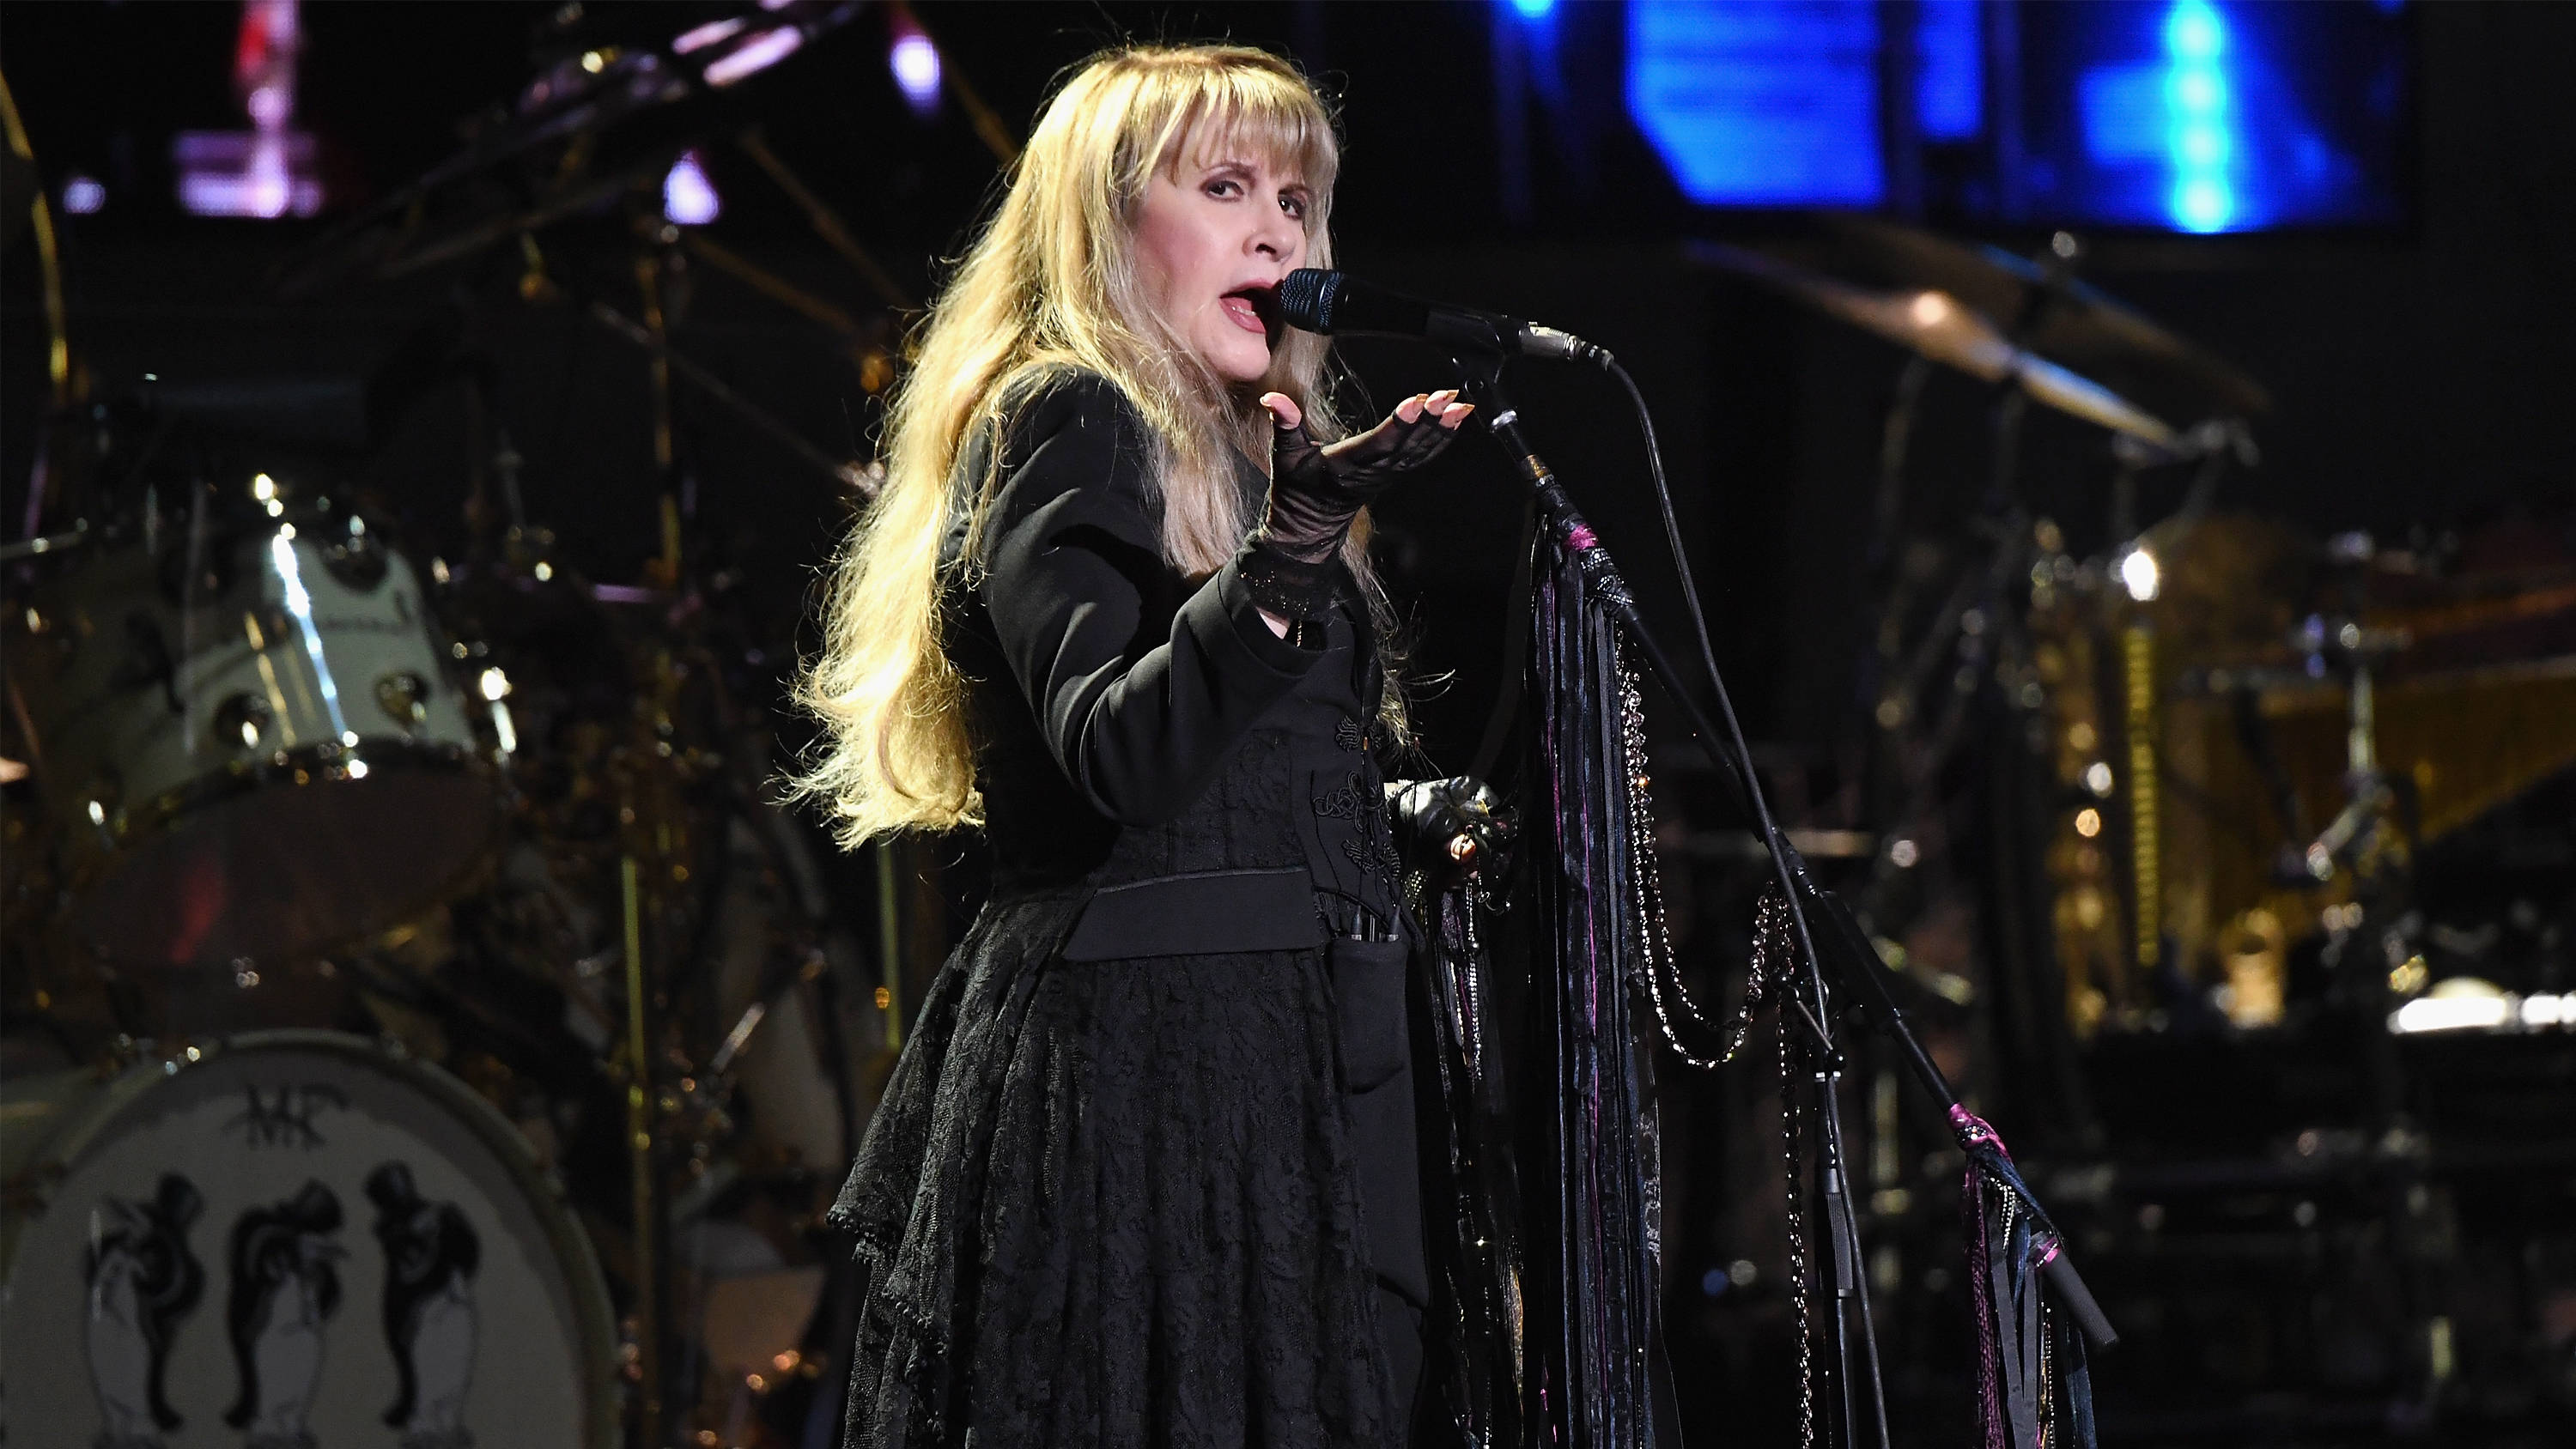 How much does it cost to see Fleetwood Mac live?